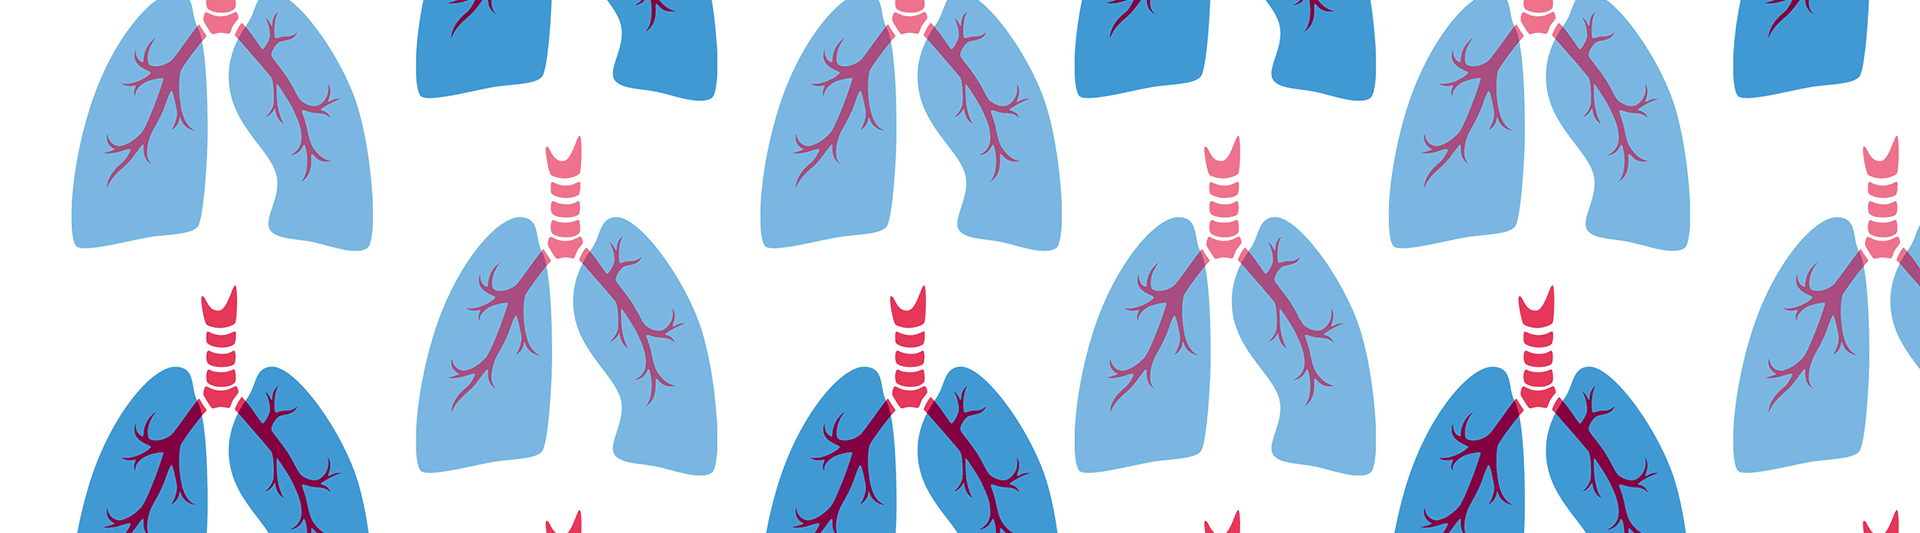 Pulmonary Arterial Hypertension and CTEPH: Cutting Edge Approaches, Webinar Recording